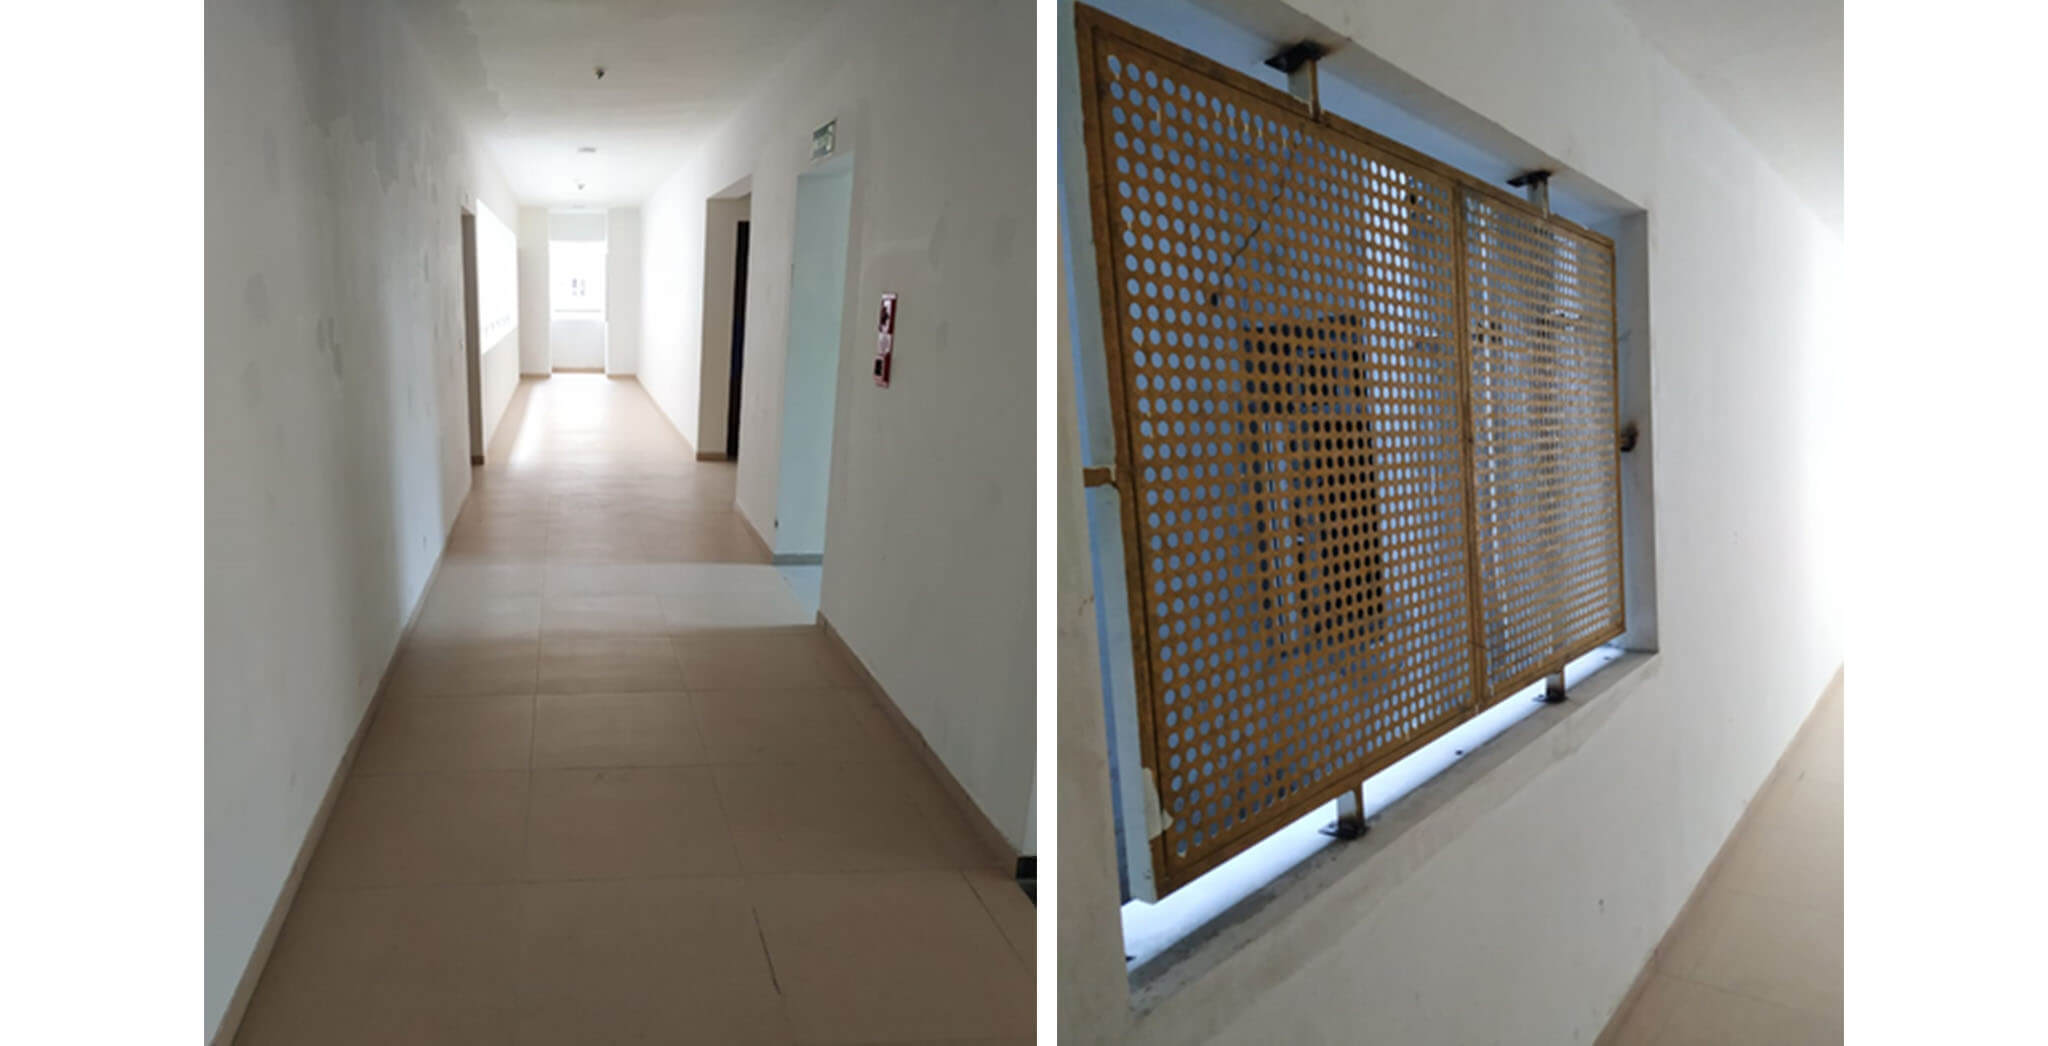 May 2020 - Deodar—F block: Corridor–Final coat painting in progress